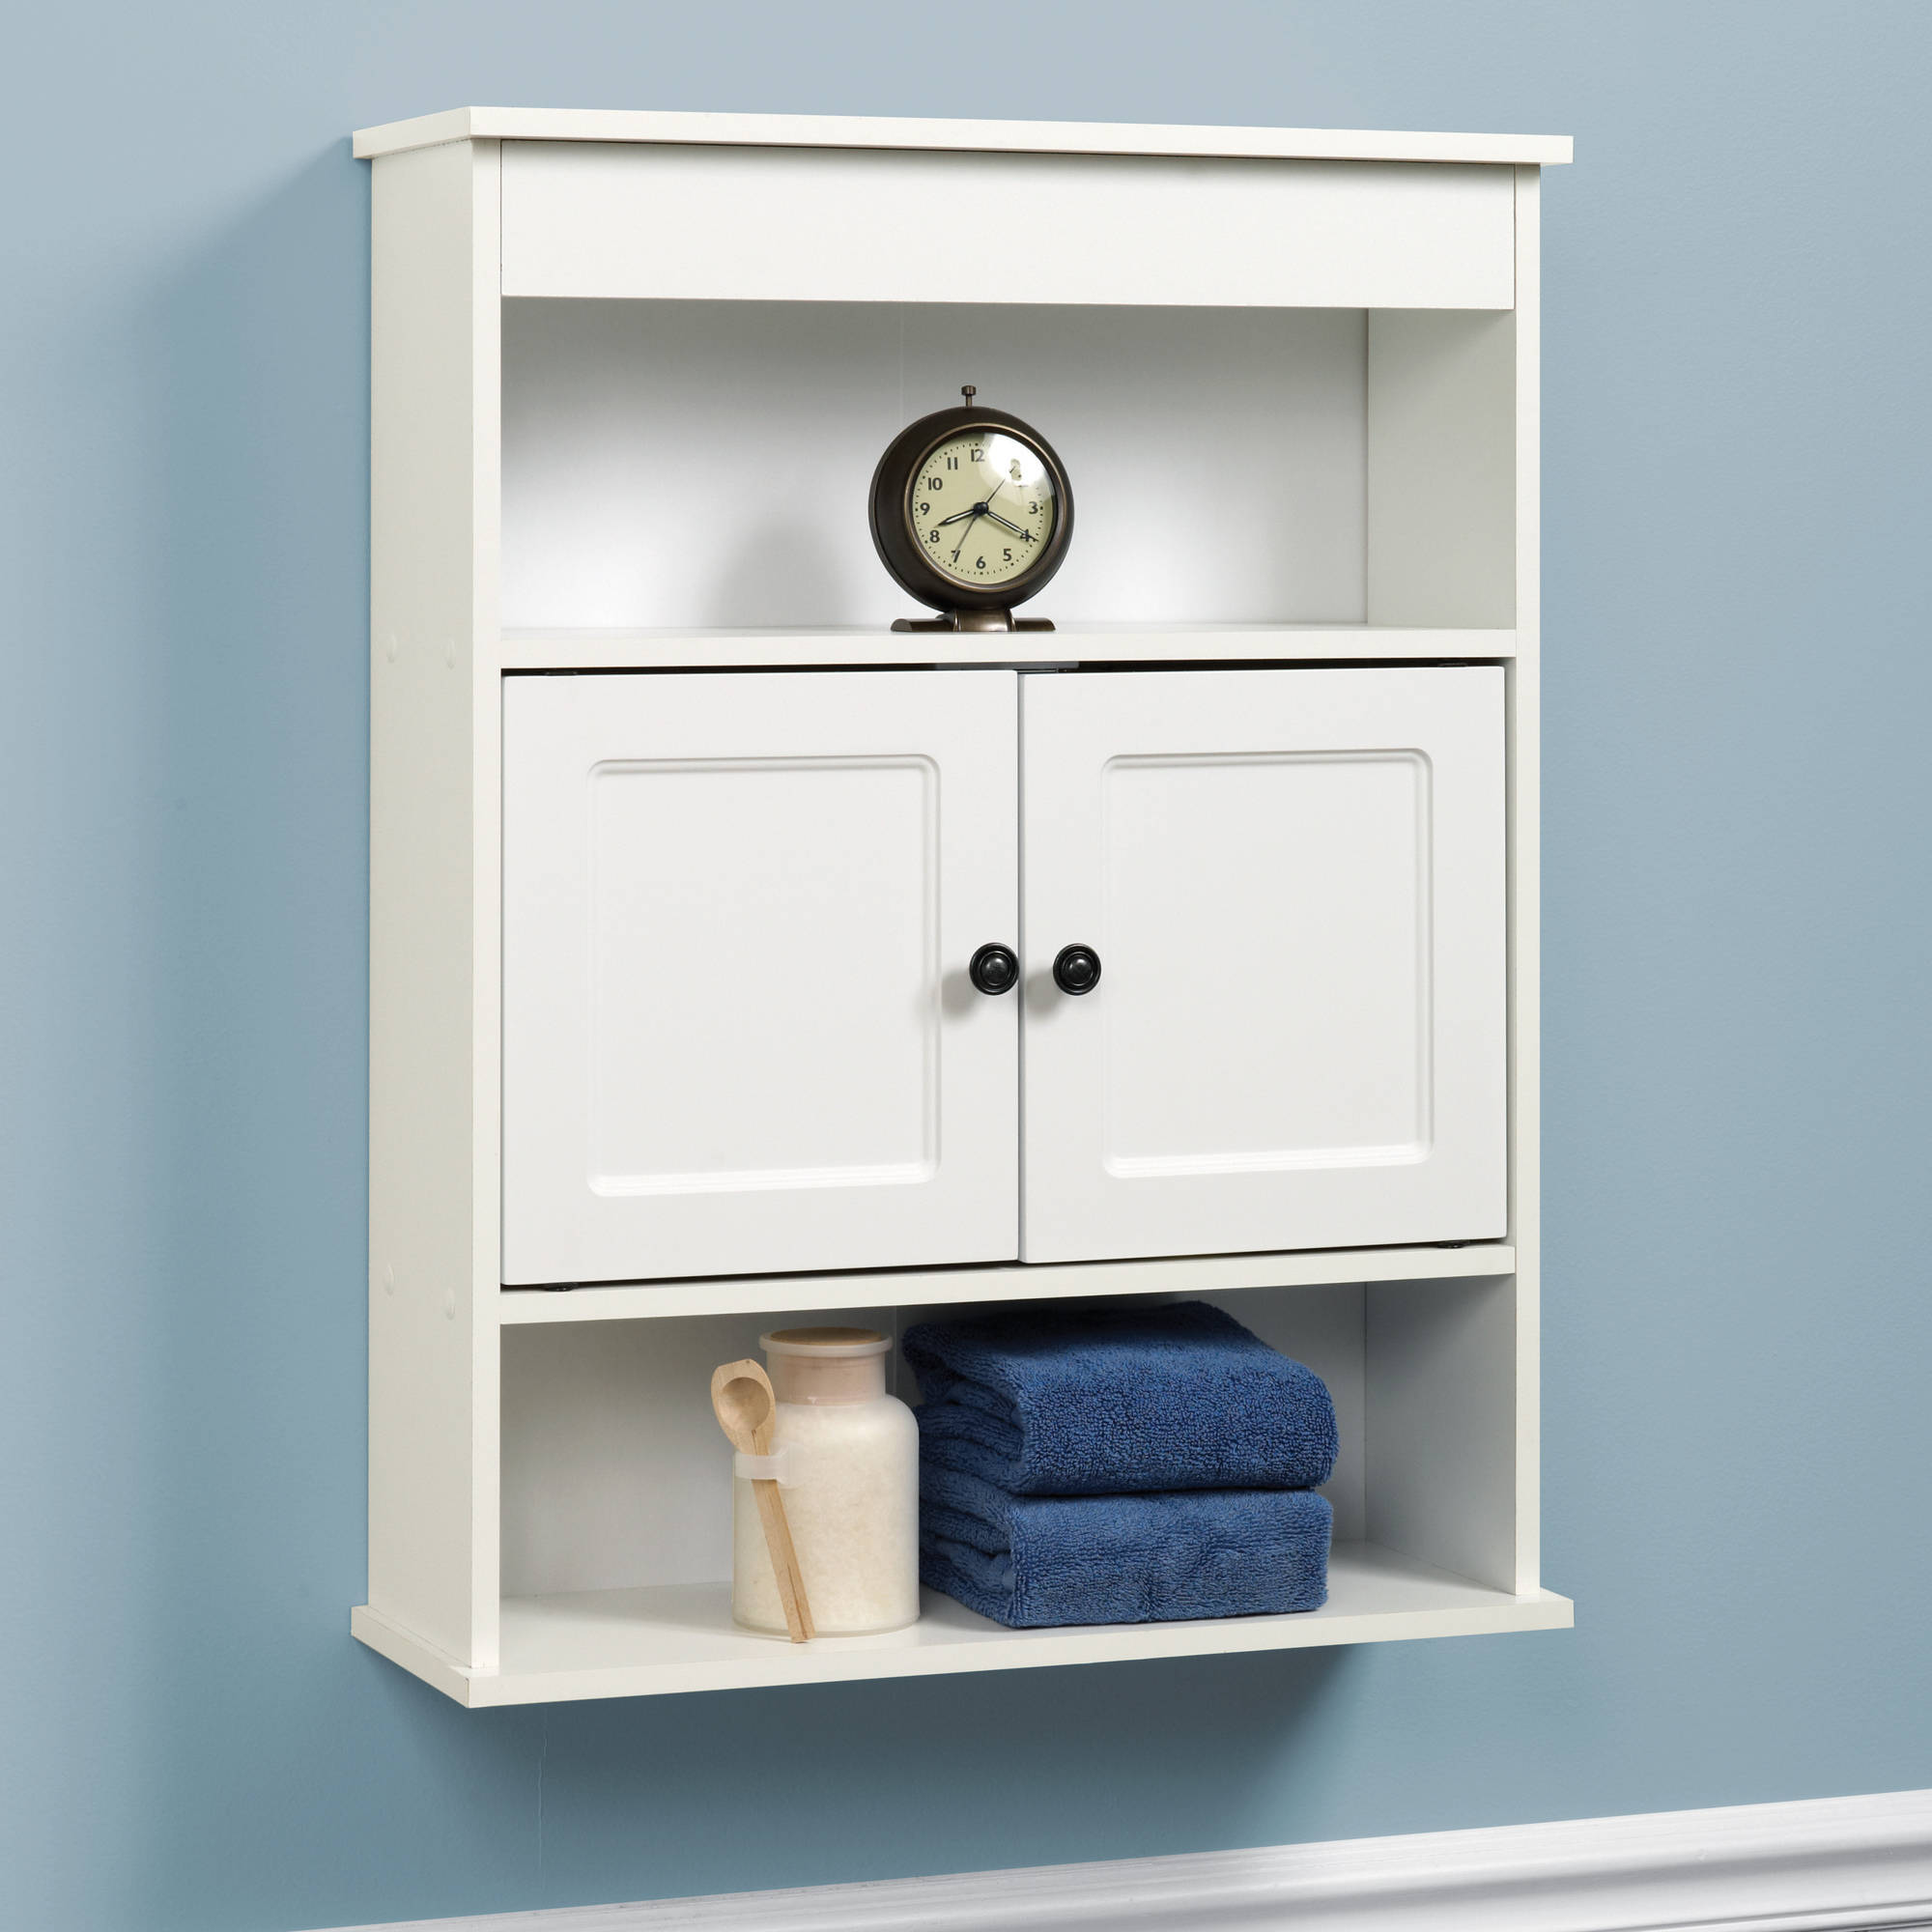 Chapter Bathroom Wall Cabinet, White - Walmart.com